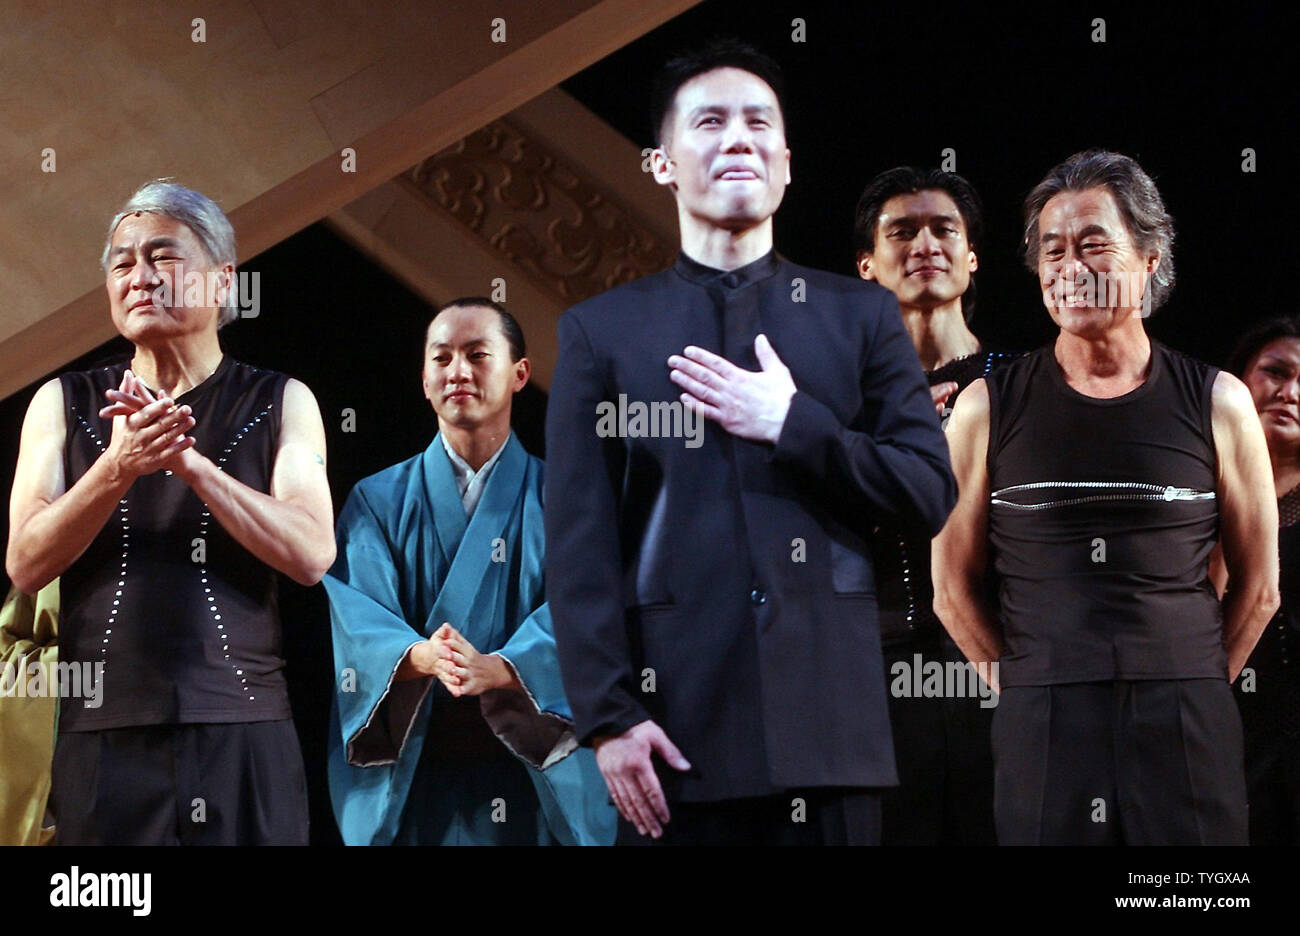 """Cast members Alvin Y.F. Ing, B. D. Wong and Sab Shimono (left to right) take their 12/2/04 opening night curtain call bows in the 2004 Broadway musical revival production of  composer Stephen Sondheim """"Pacific Overtures"""" presented by the Roundabout theatre comapny. (UPI Photo/Ezio Petersen) Stock Photo"""